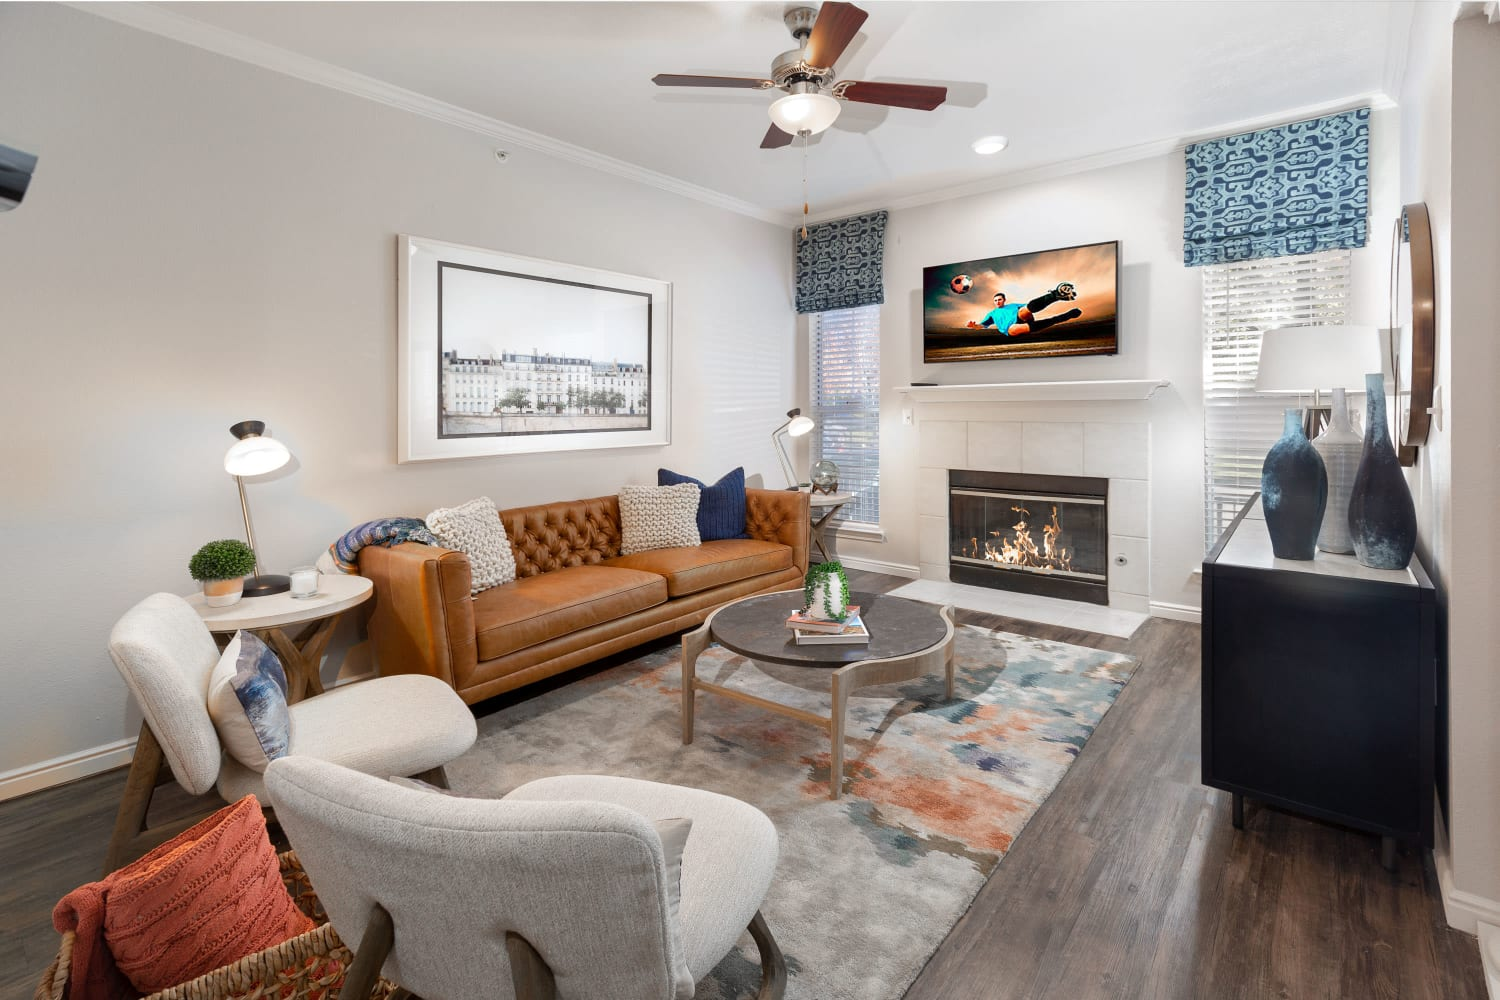 Enjoy your new living room at Irving Schoolhouse Apartments in Salt Lake City, Utah